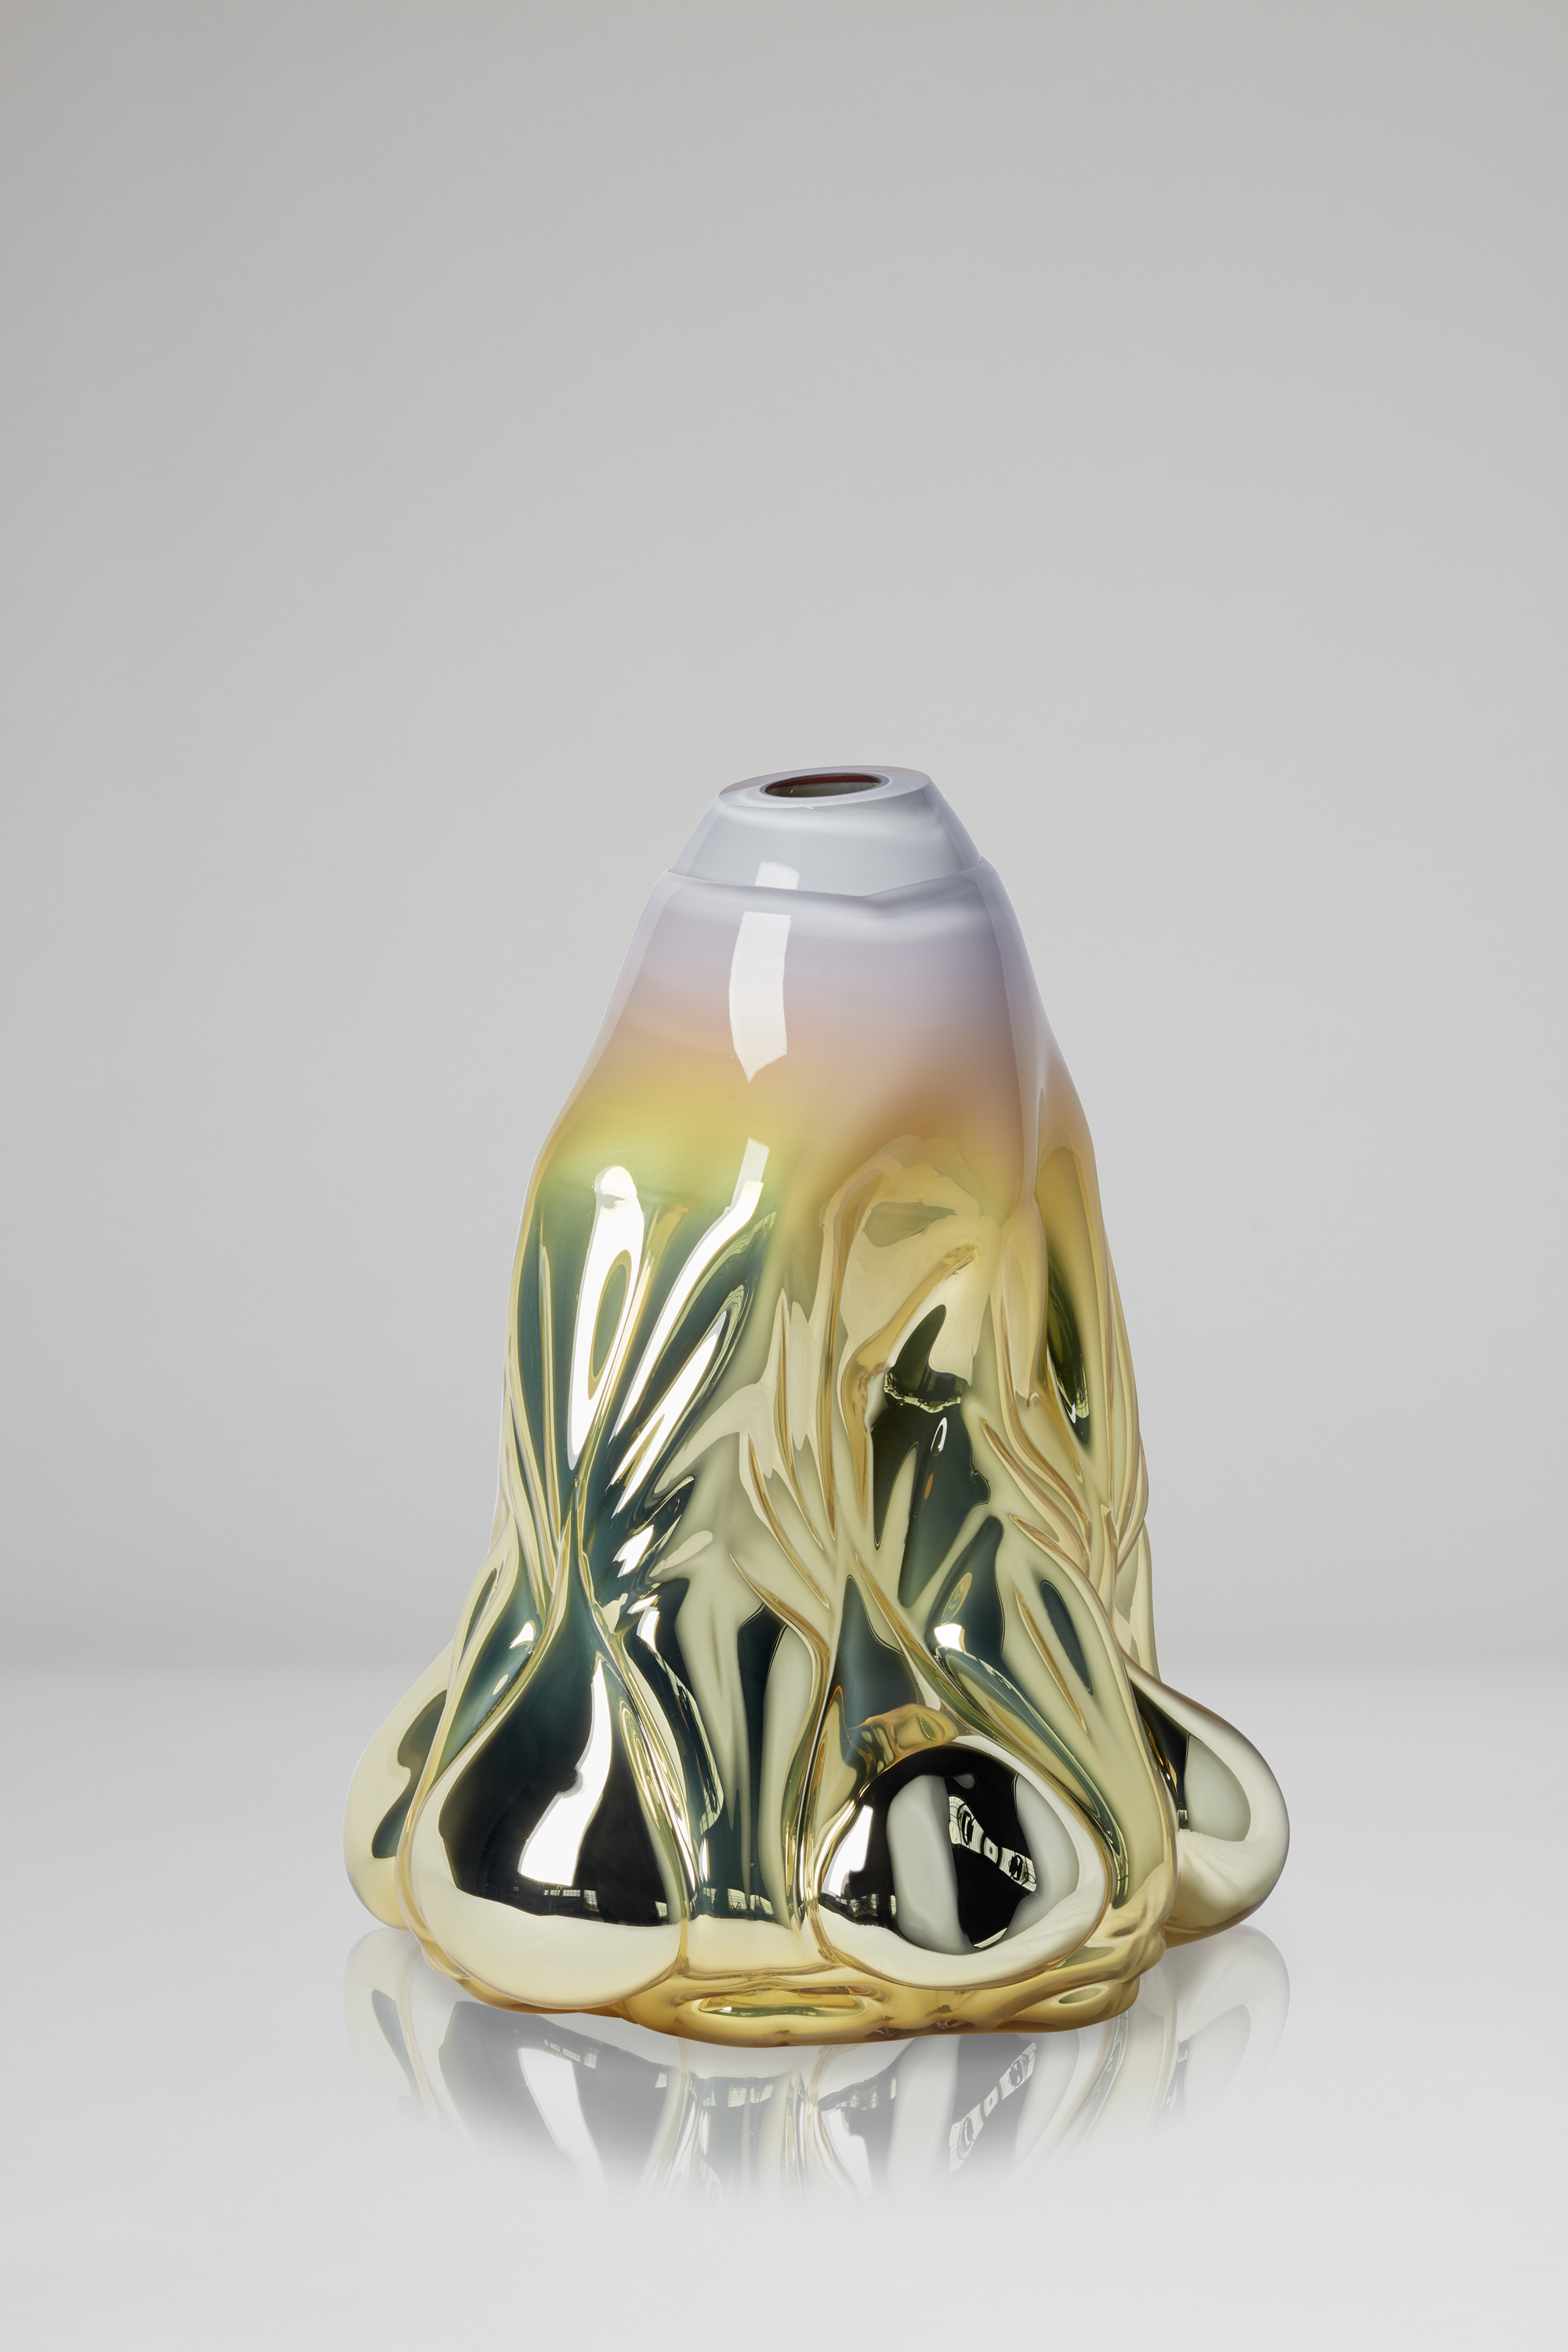 Dripping Print, soft yellow metallic  2018, Boda Glasbruk Shape-blown glass, mirror foiled 50 cm x 37 cm Edition 1 + 2 AP